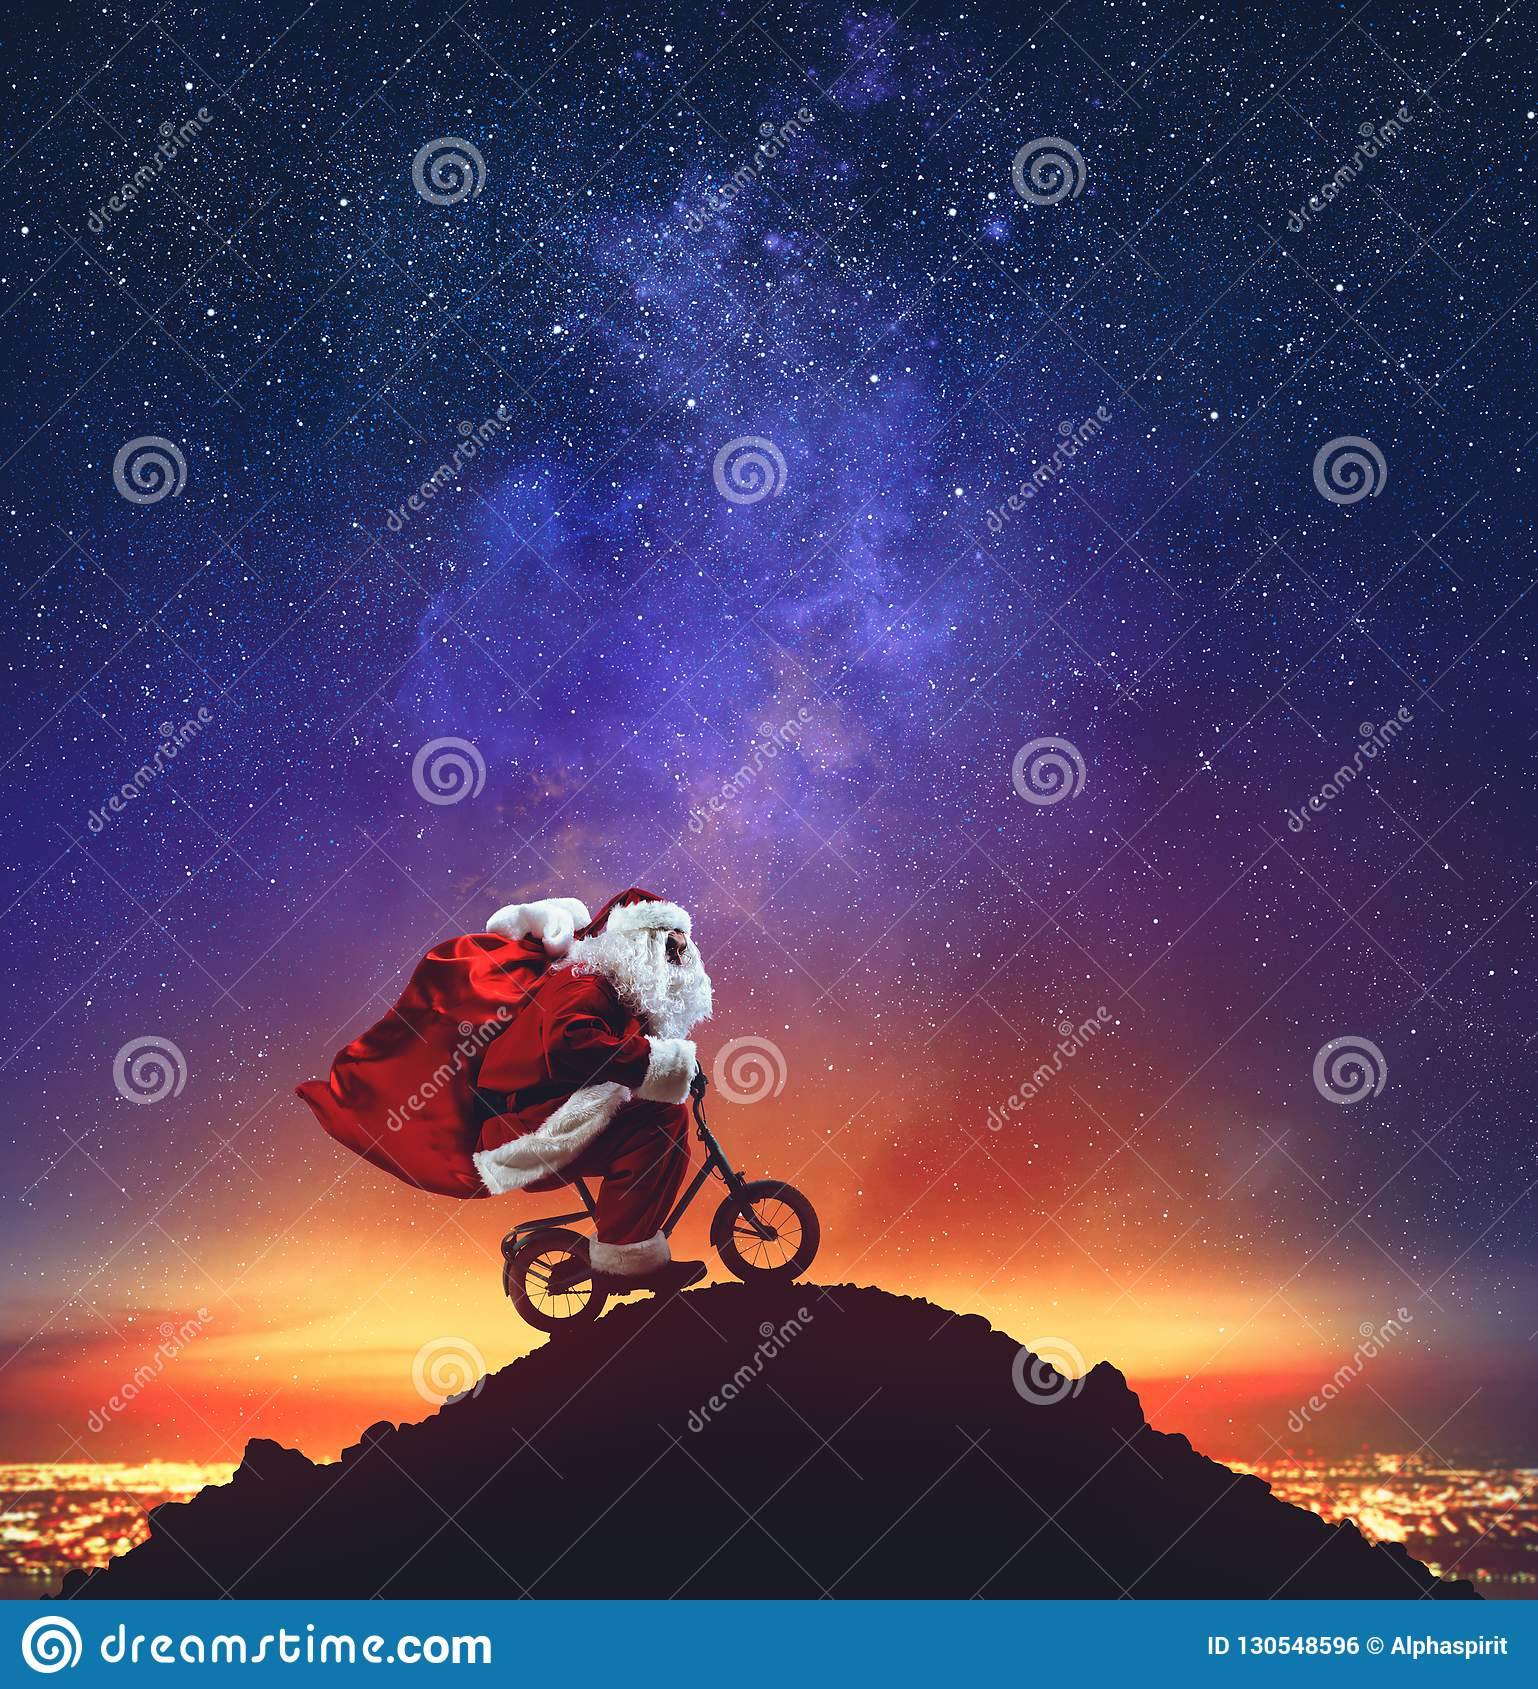 Santa Claus on a little bike on the peak of a mountain under the stars